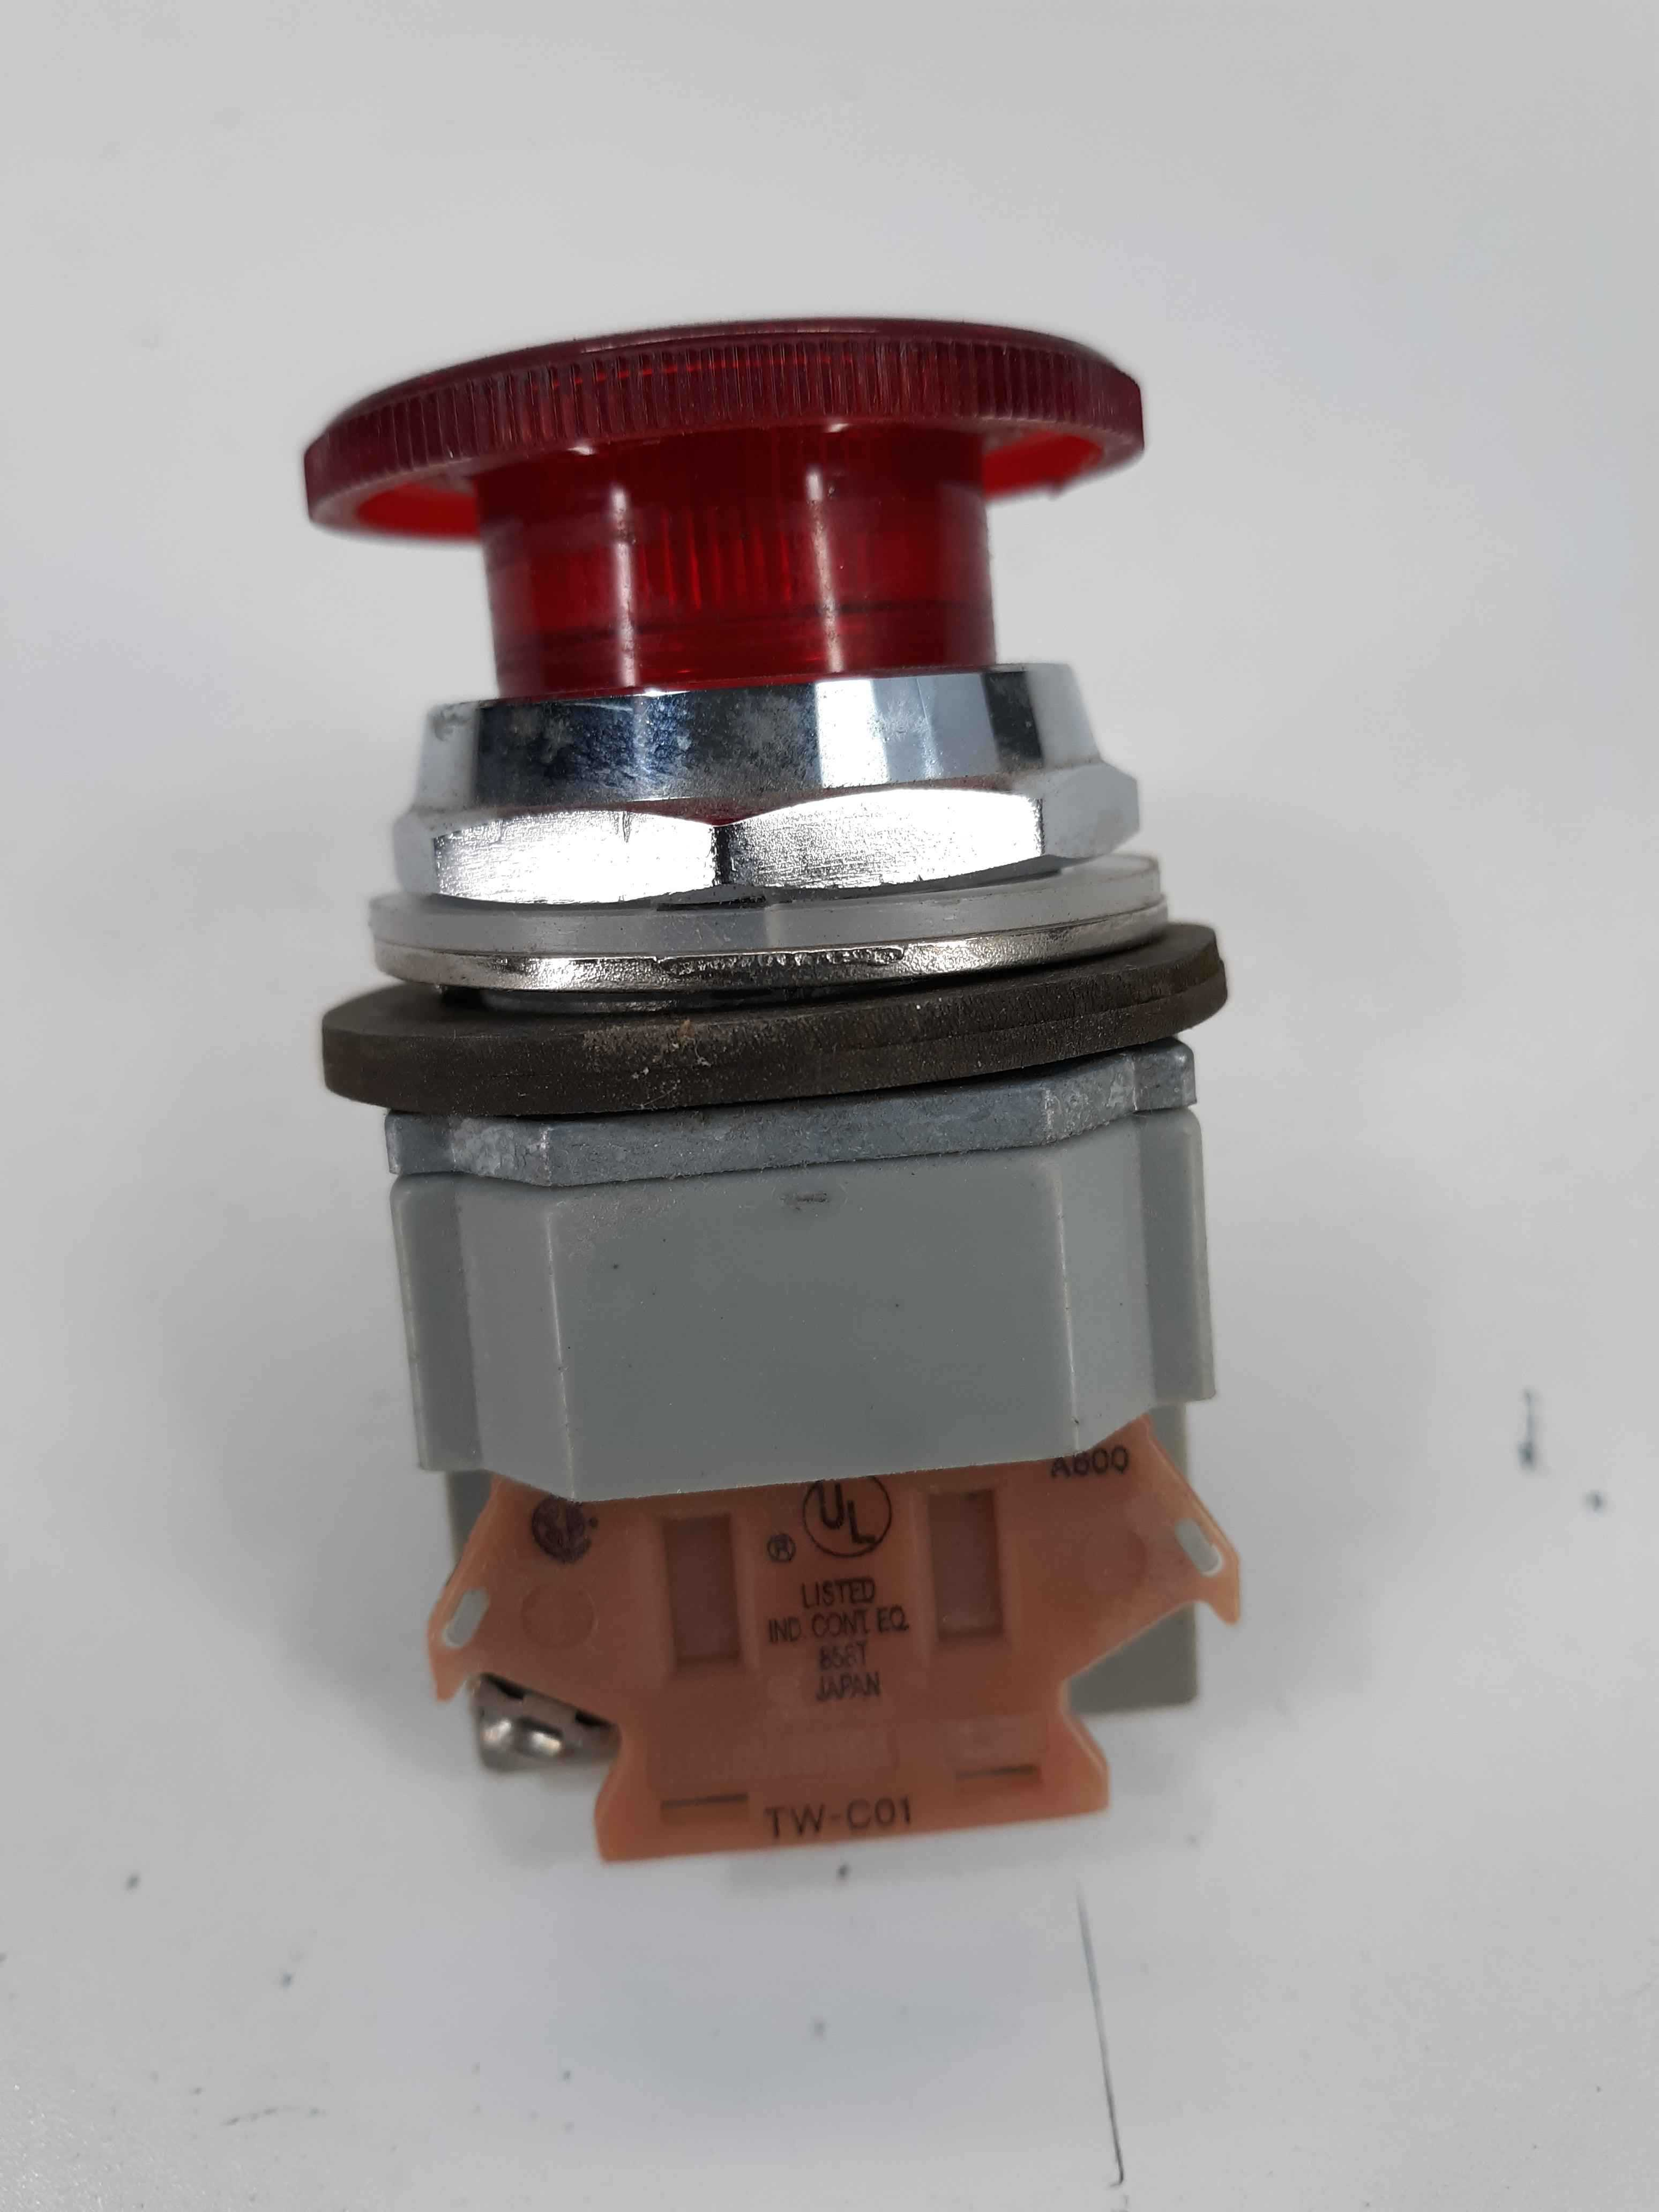 Idec AVD Red Stop Pushbutton  w/ TW-C01